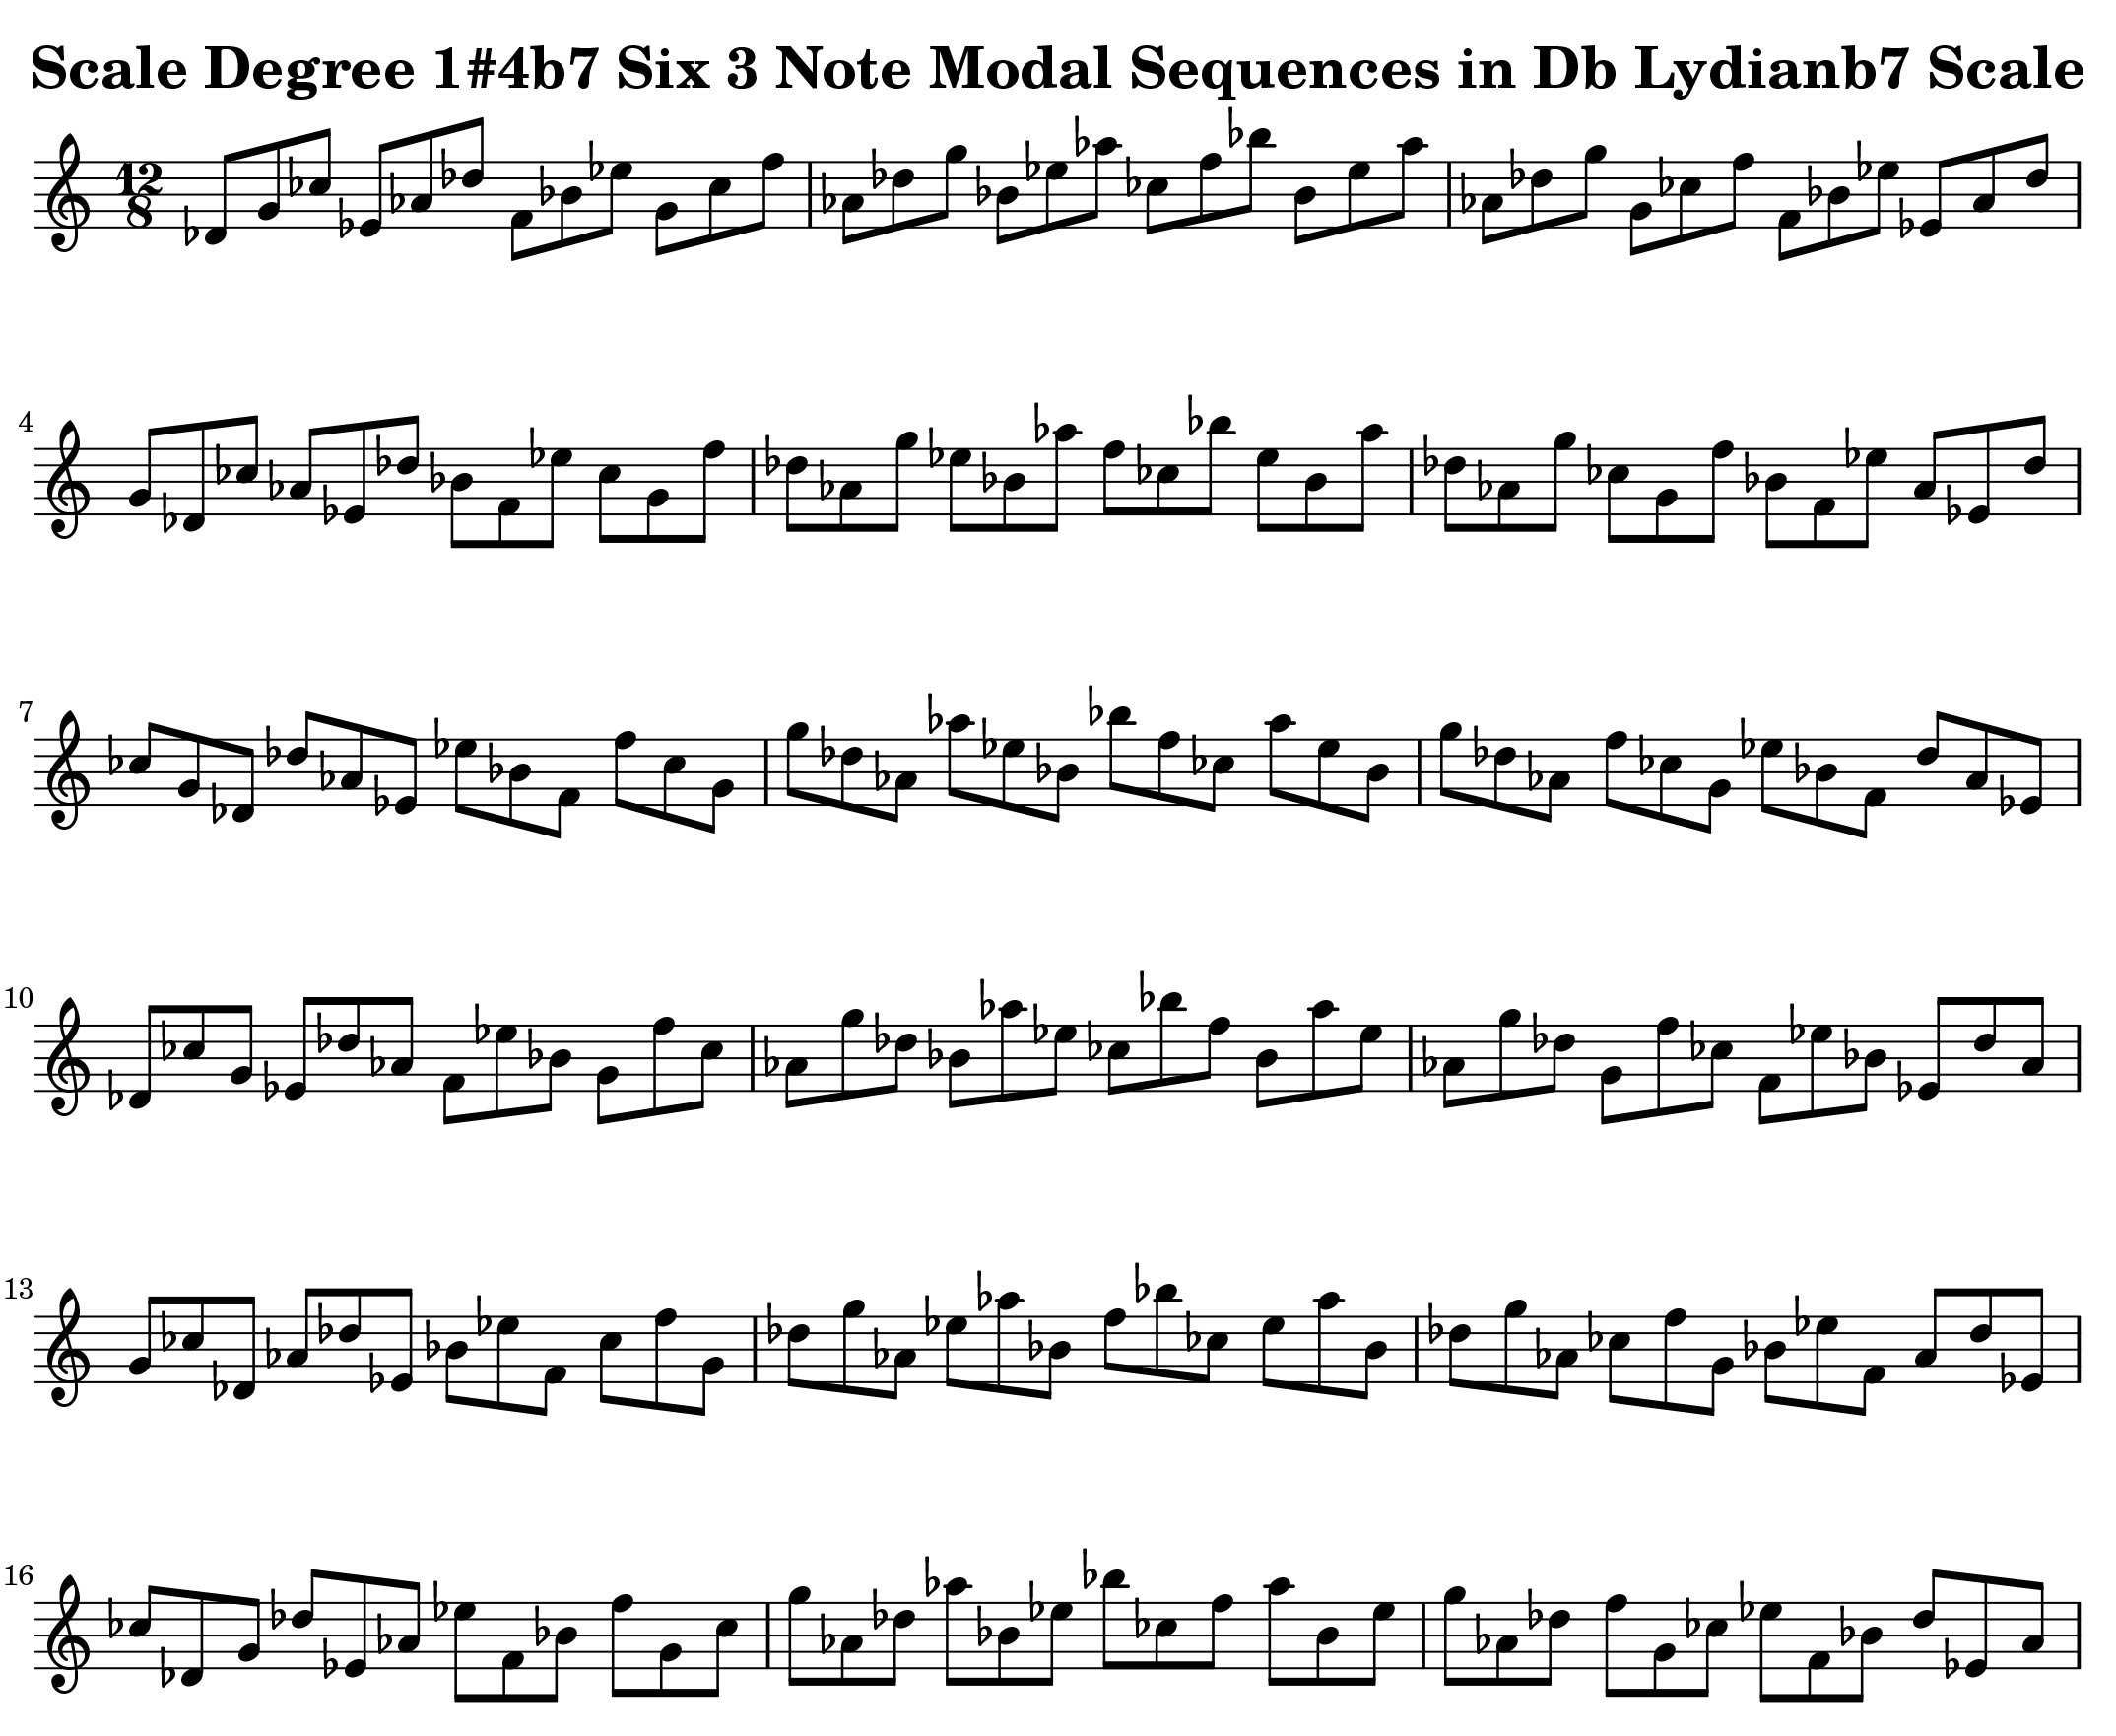 Db Lydian b7 Scale Modal Sequencing 3 Note One_Octave Ascending and Descending Modal Sequencing 3 Note Group 2 for all instrumentalist by Bruce Arnold for Muse Eek Publishing Company